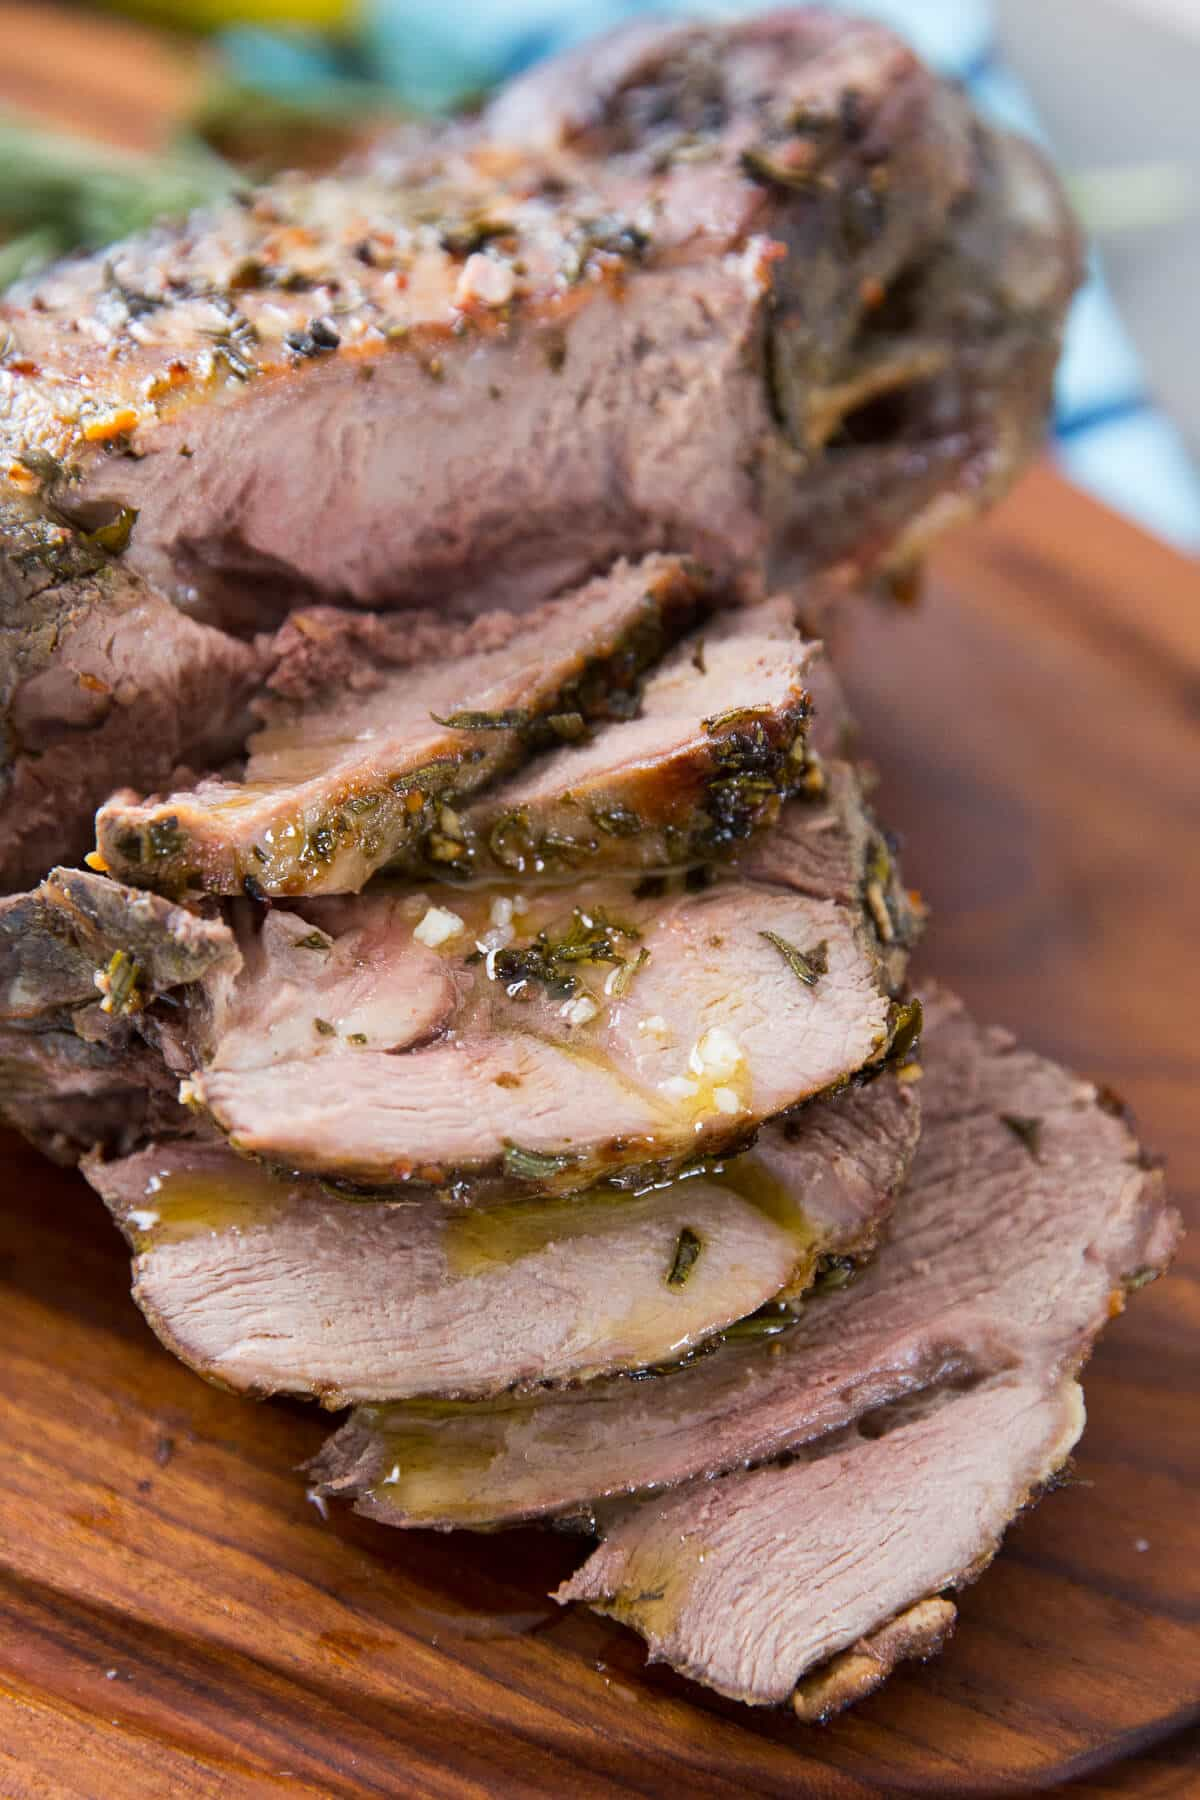 Lamb roast is a must for special occasions like Easter! The Greek style roast is sure to steal the show!